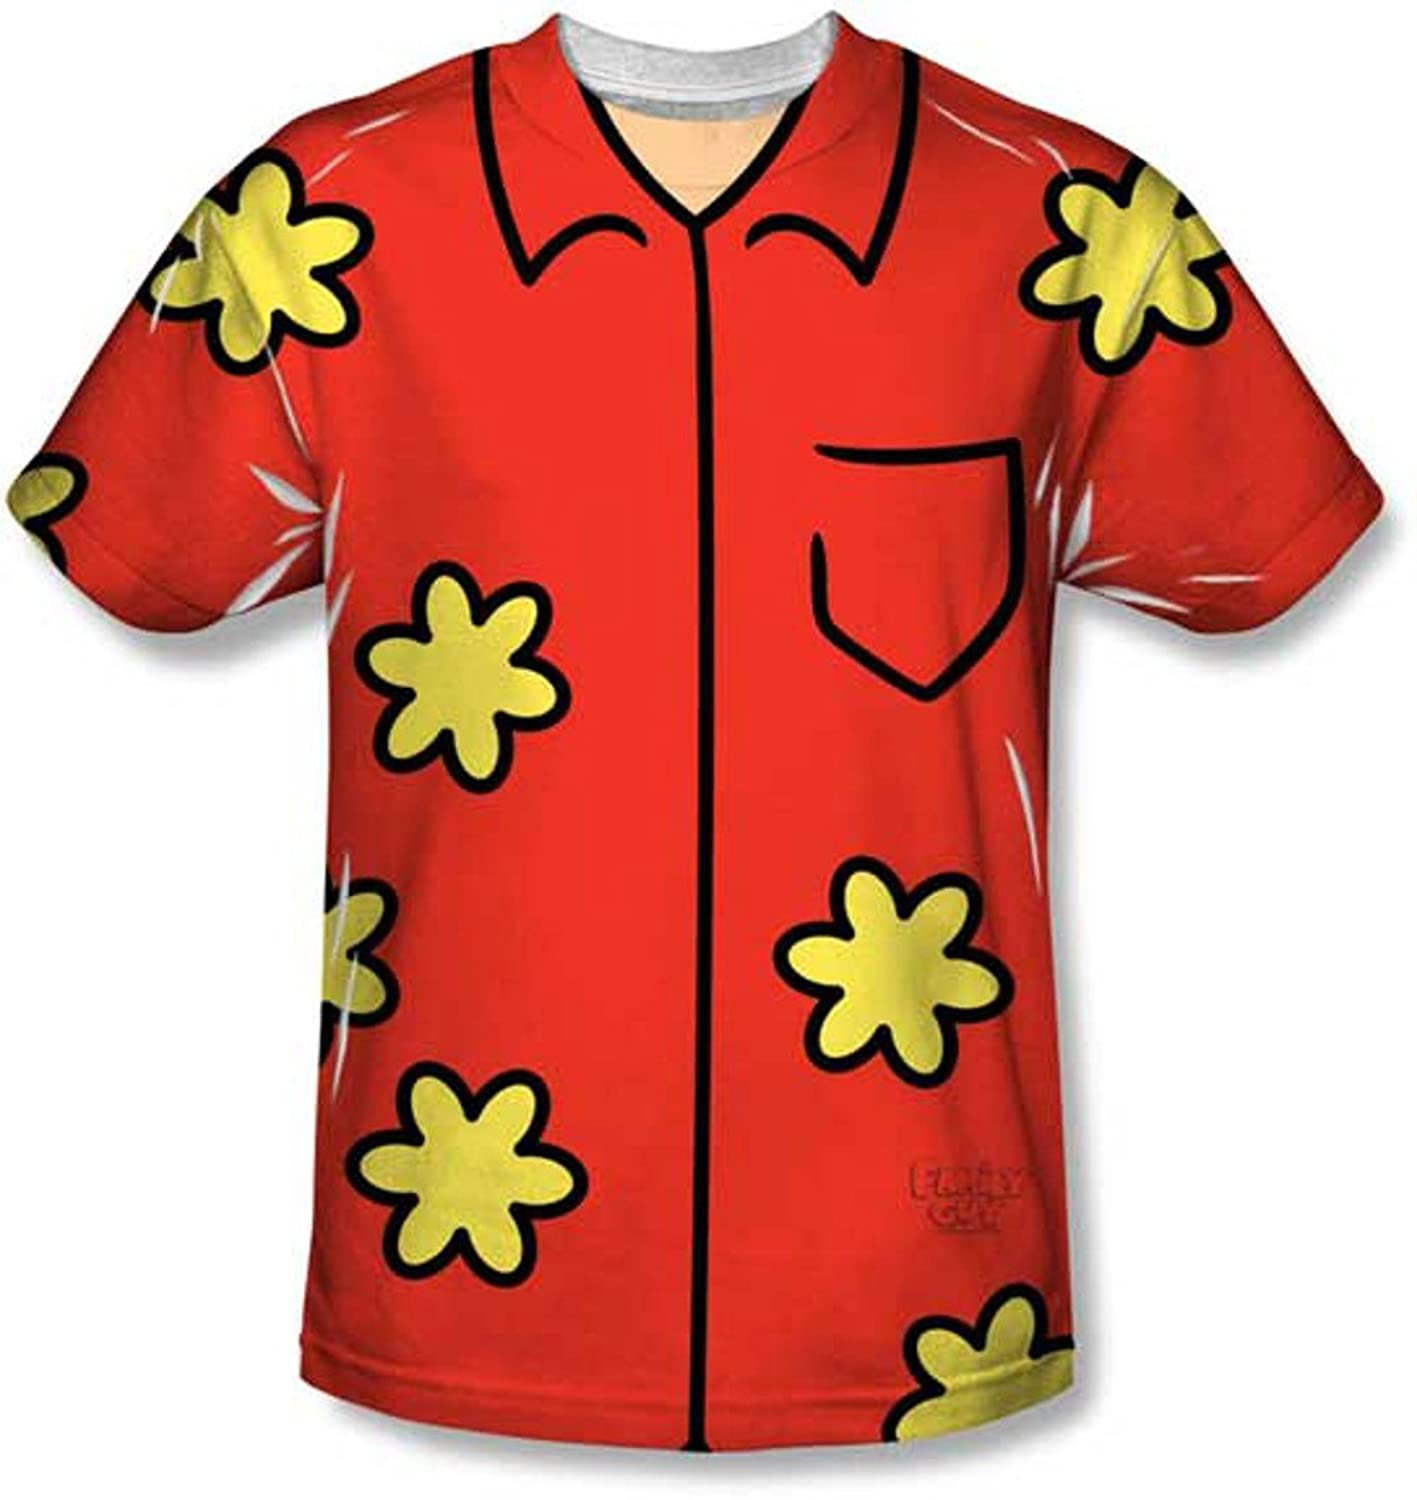 Glenn Quagmire Family Guy T-Shirt Costume-Mens Medium: Amazon.co ...